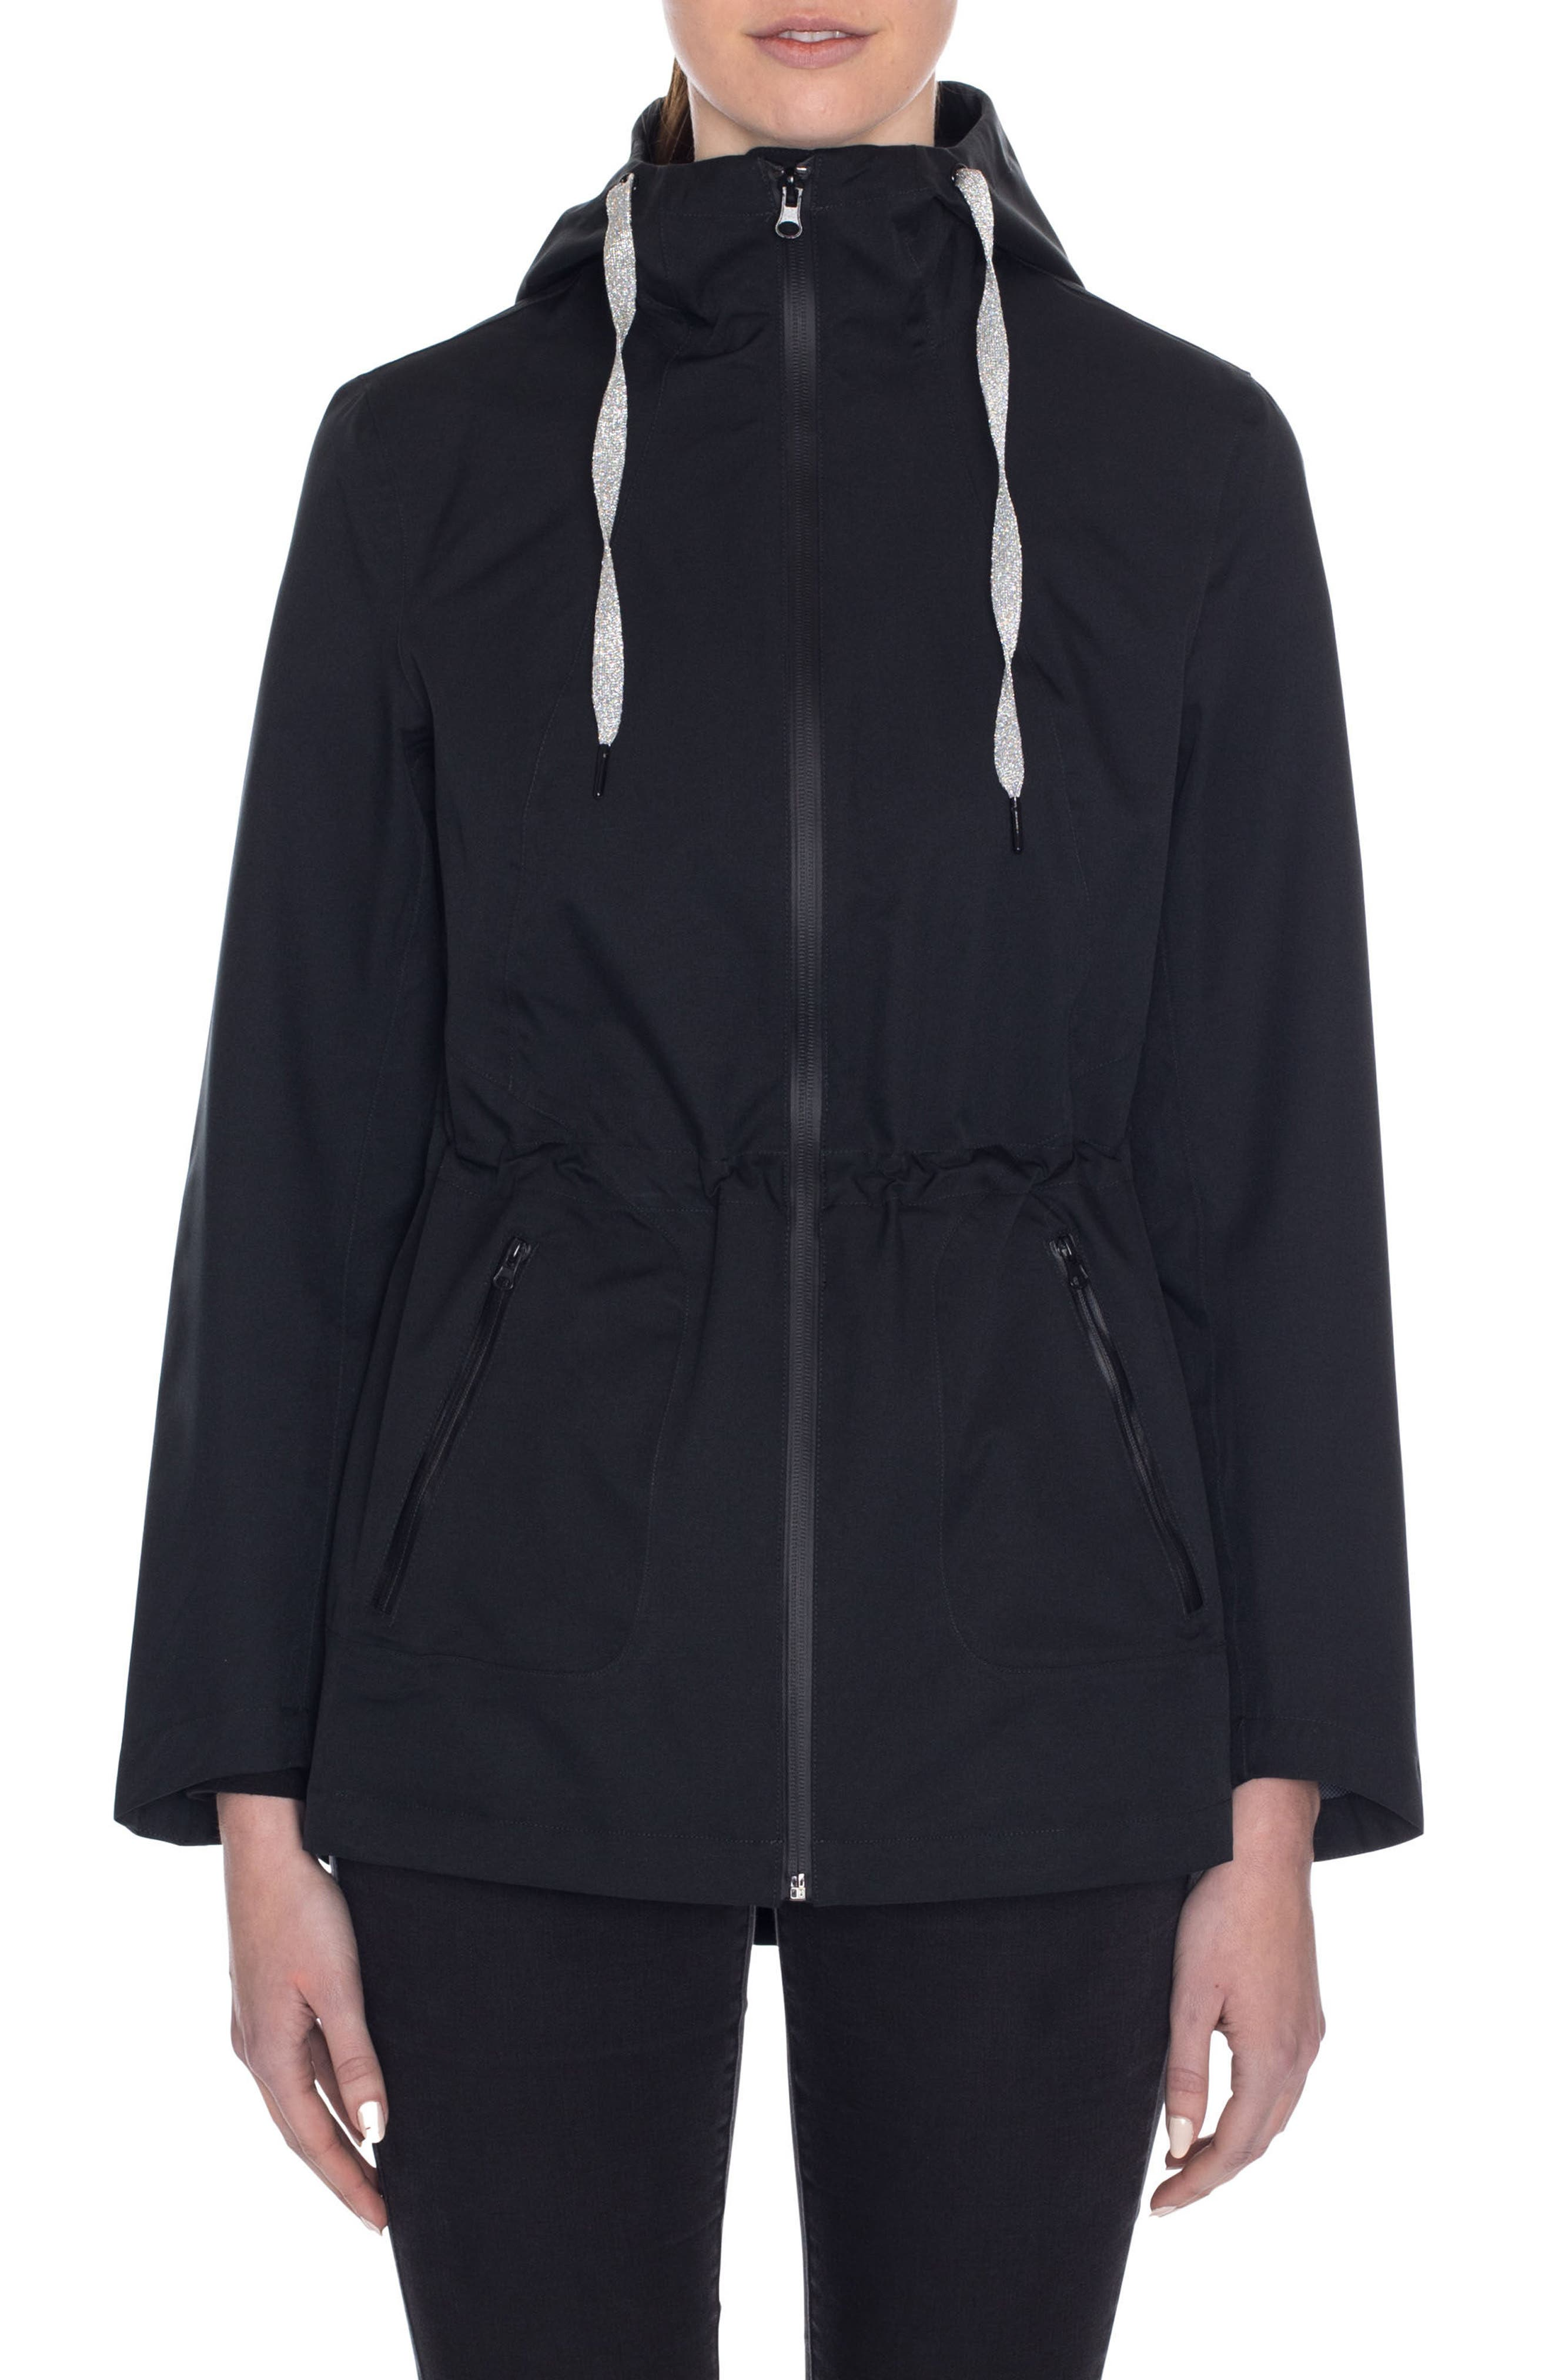 Laundry by Shelli Segal Hooded Active Jacket